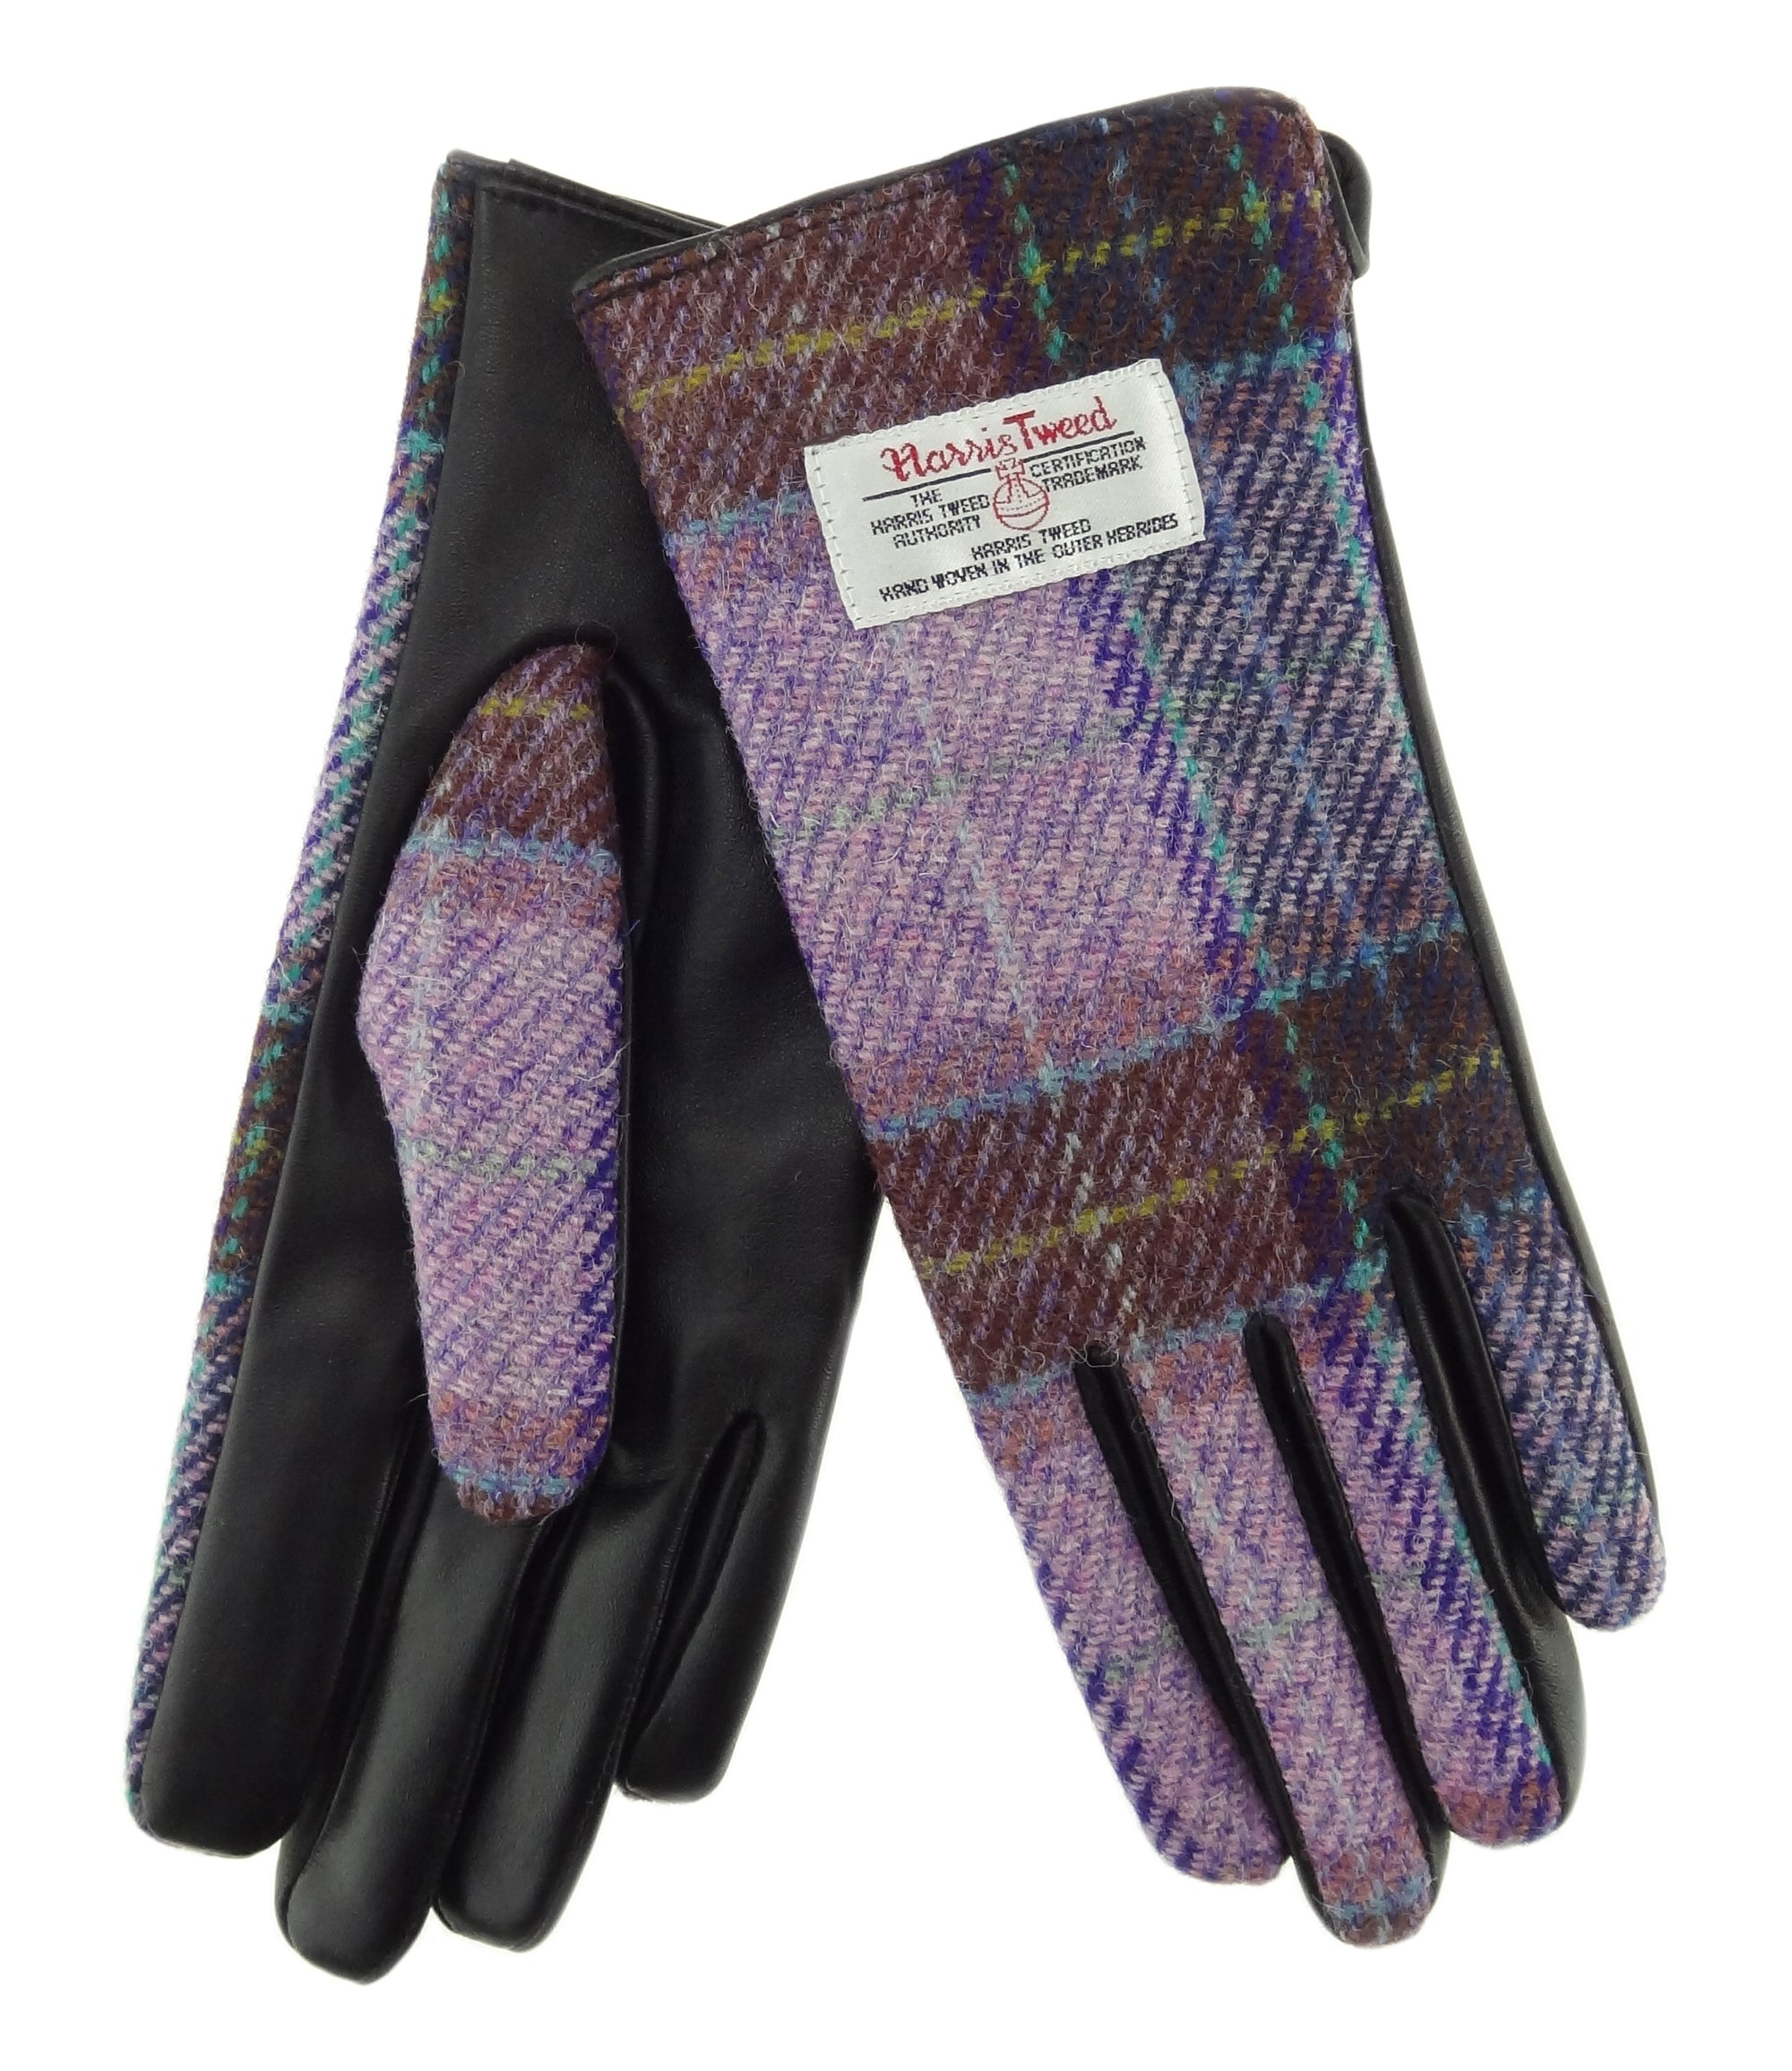 Womens Harris Tweed Gloves - Black Leather